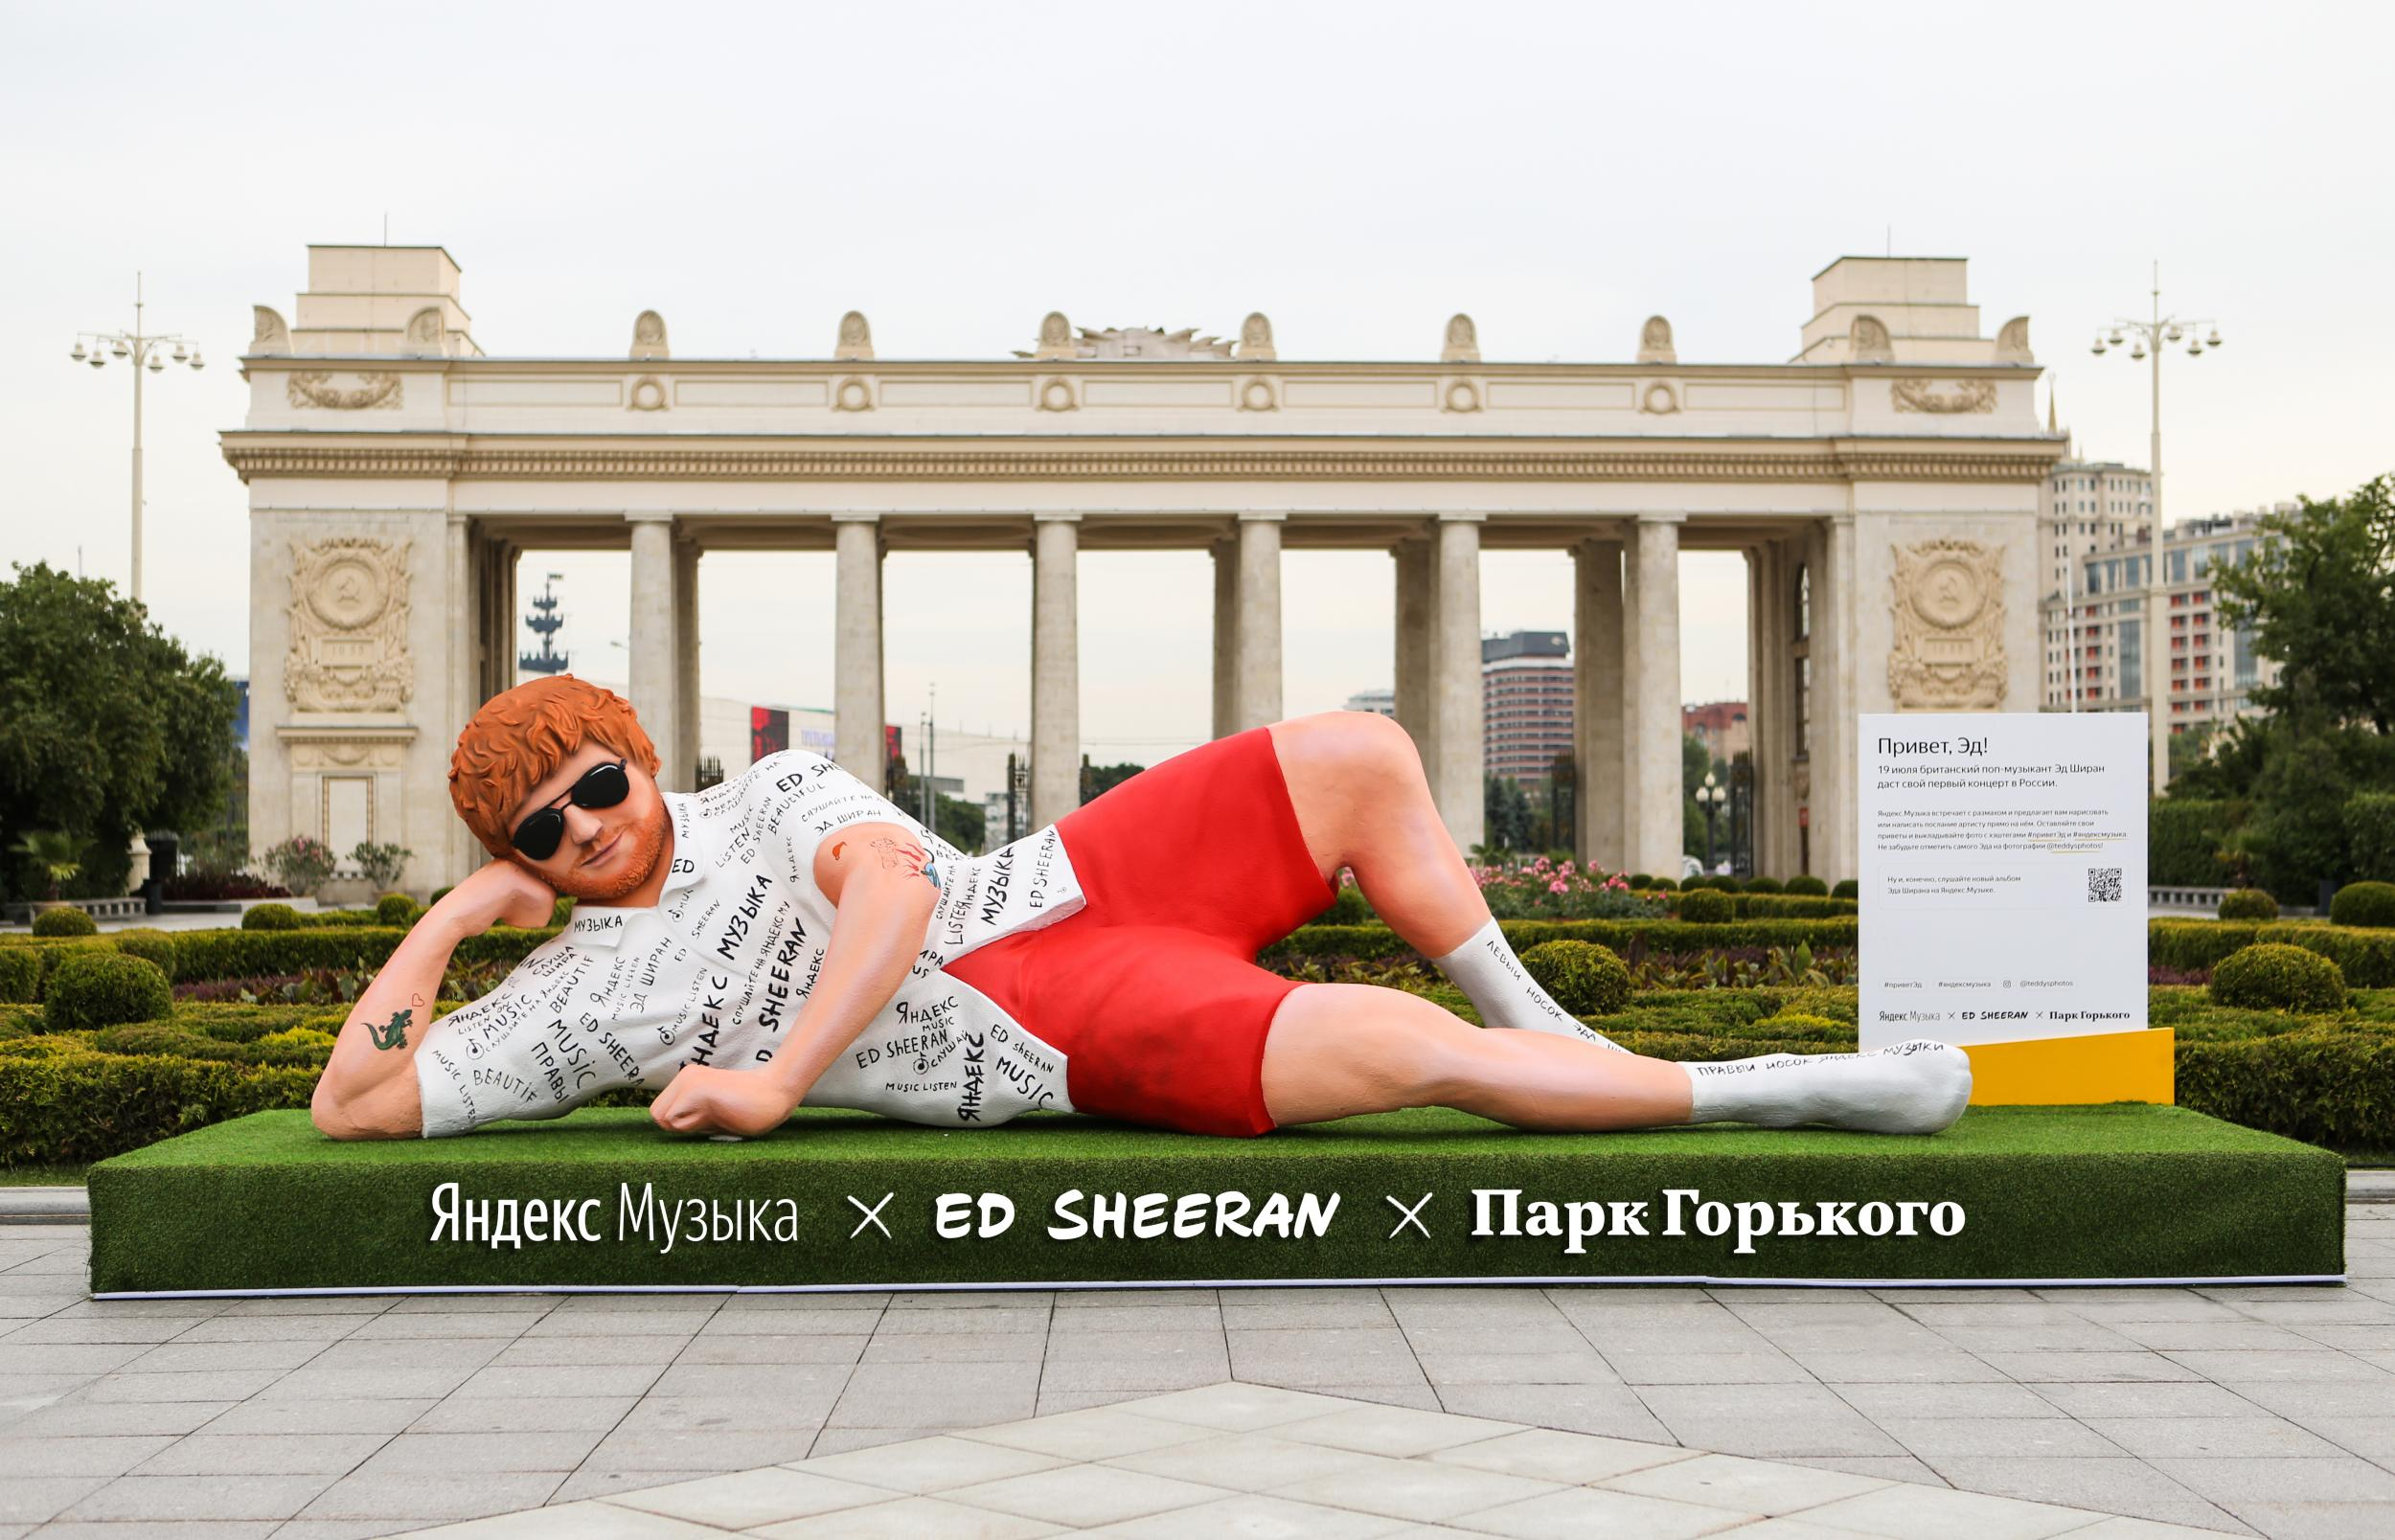 Image result for Ed Sheeran statue moscow